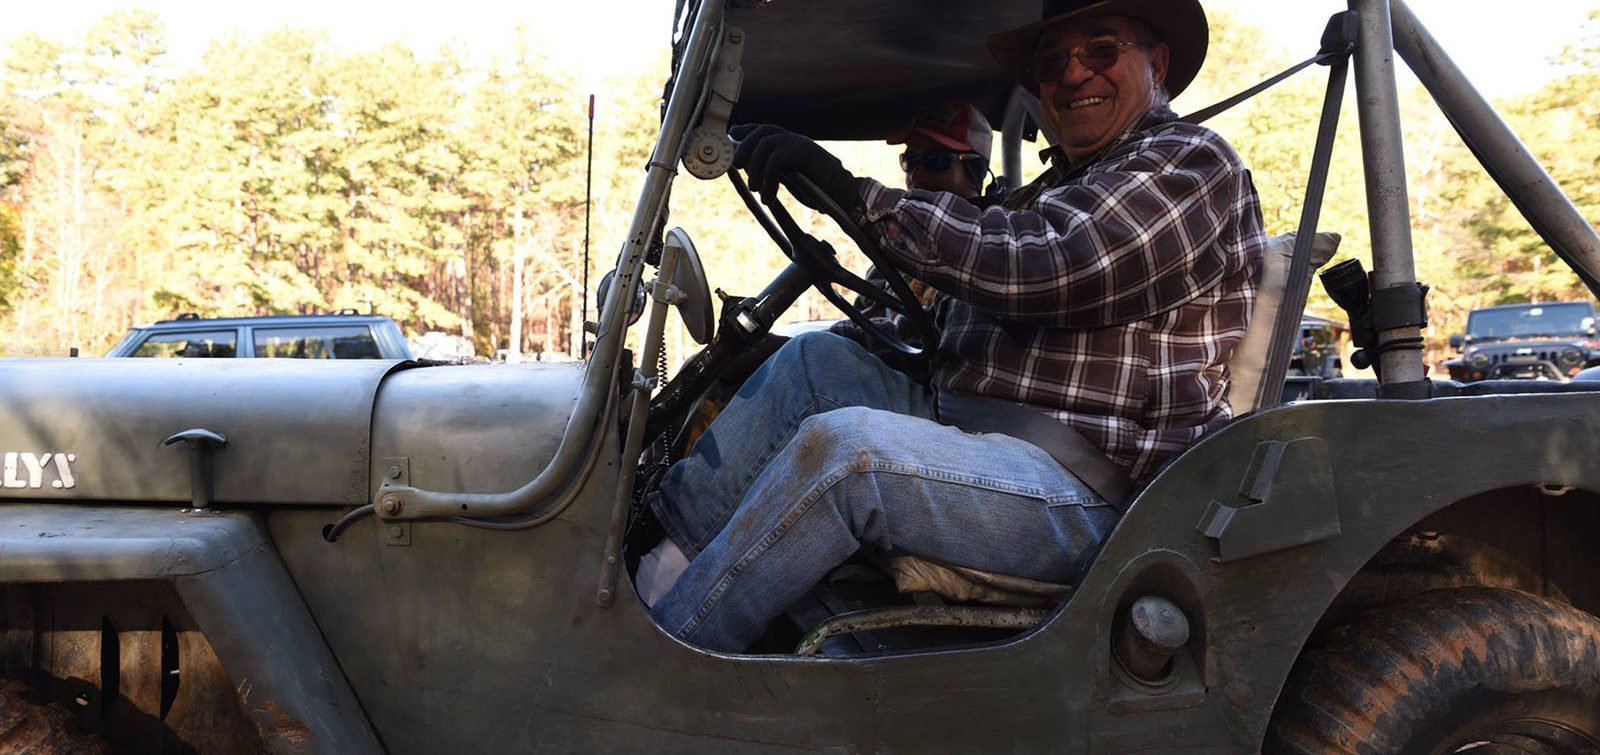 Jack and his Willys- central NC 4x4 - OHV trail ride at Uwharrie National Forest